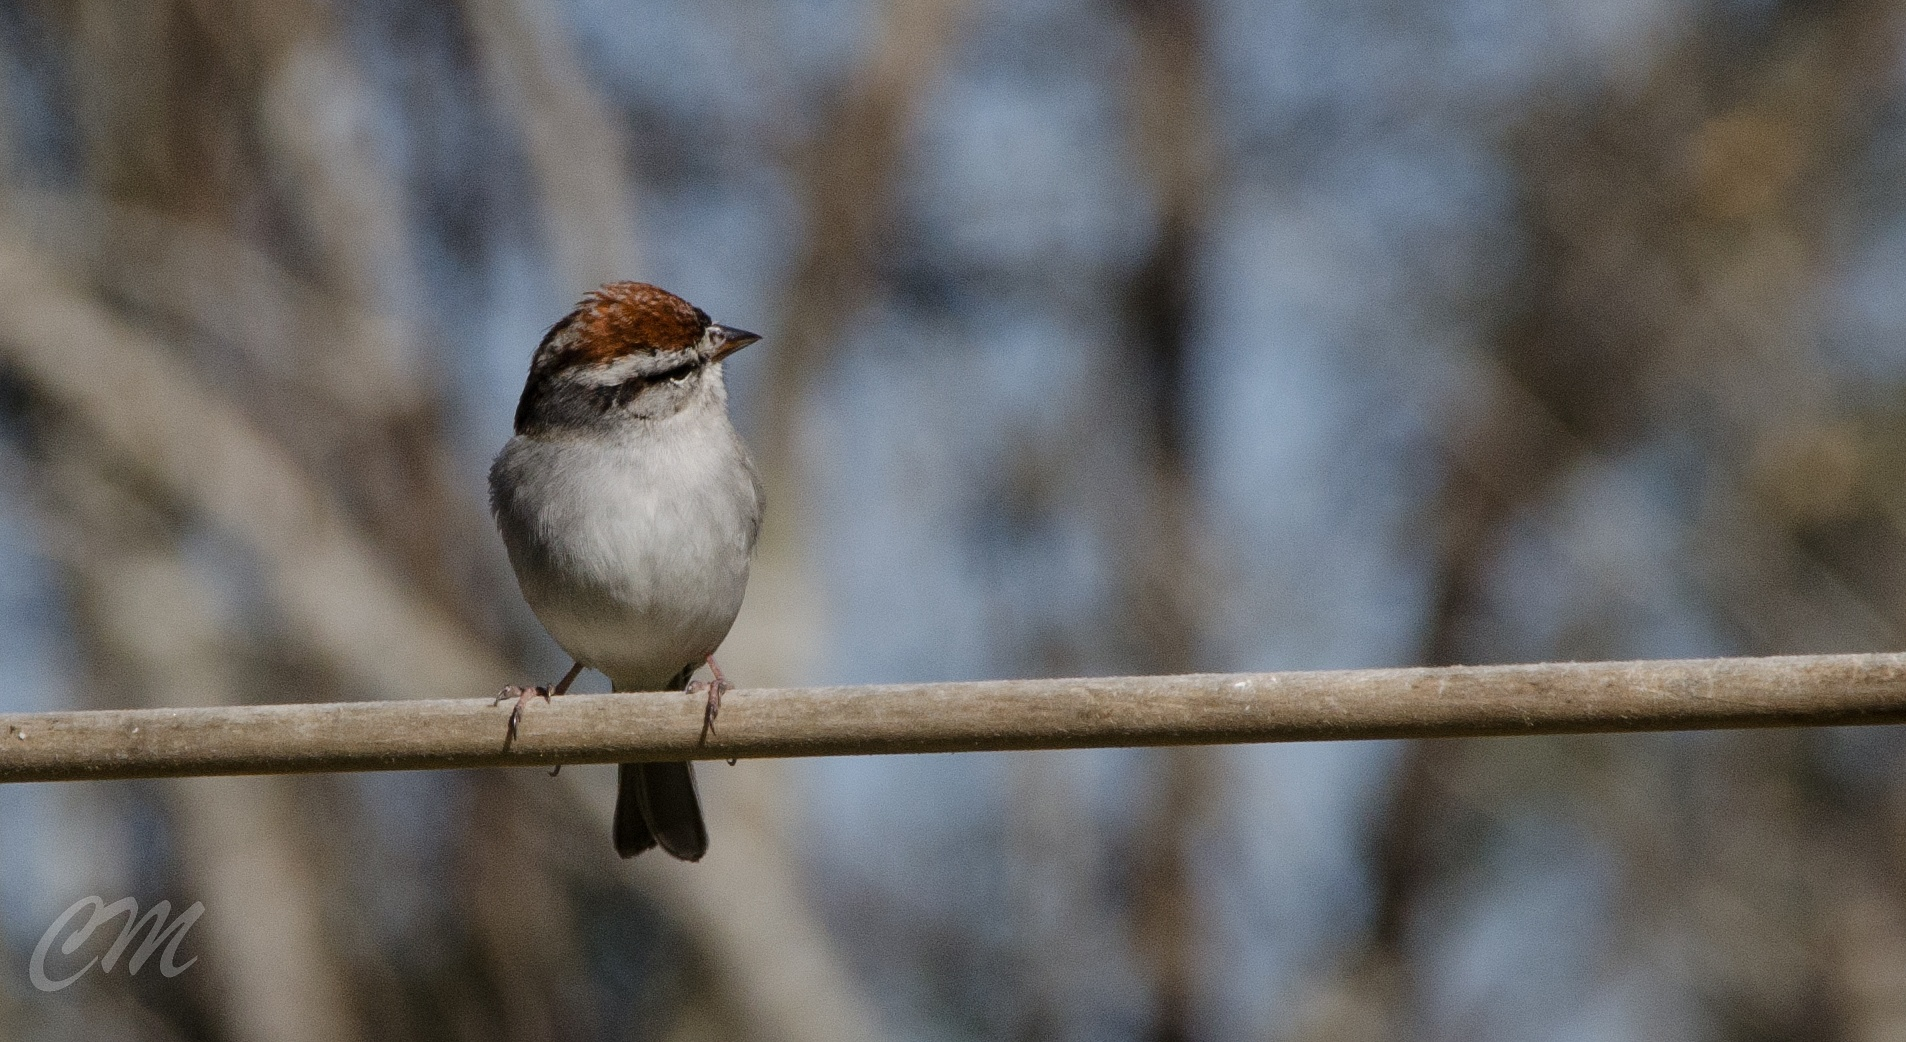 Chipping Sparrow by Christina Minor